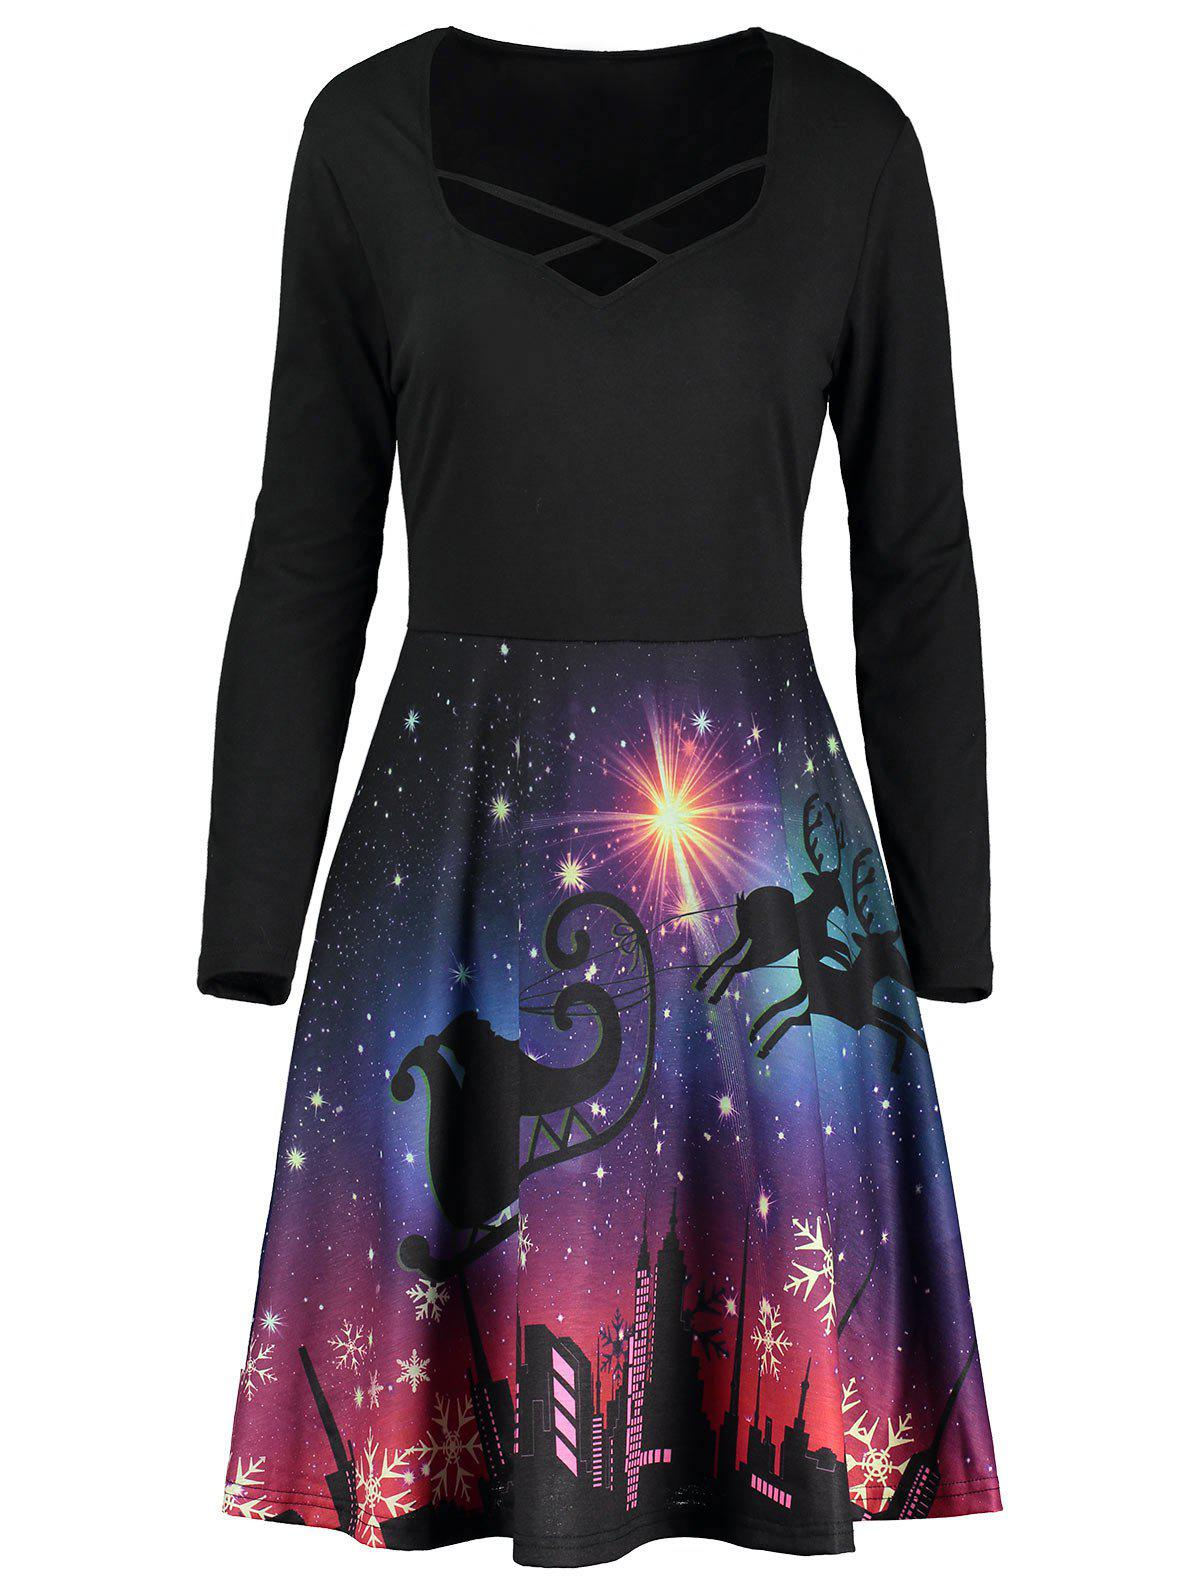 Gorgeous Night Scene Printed Long Sleeve Dress - COLORMIX XL